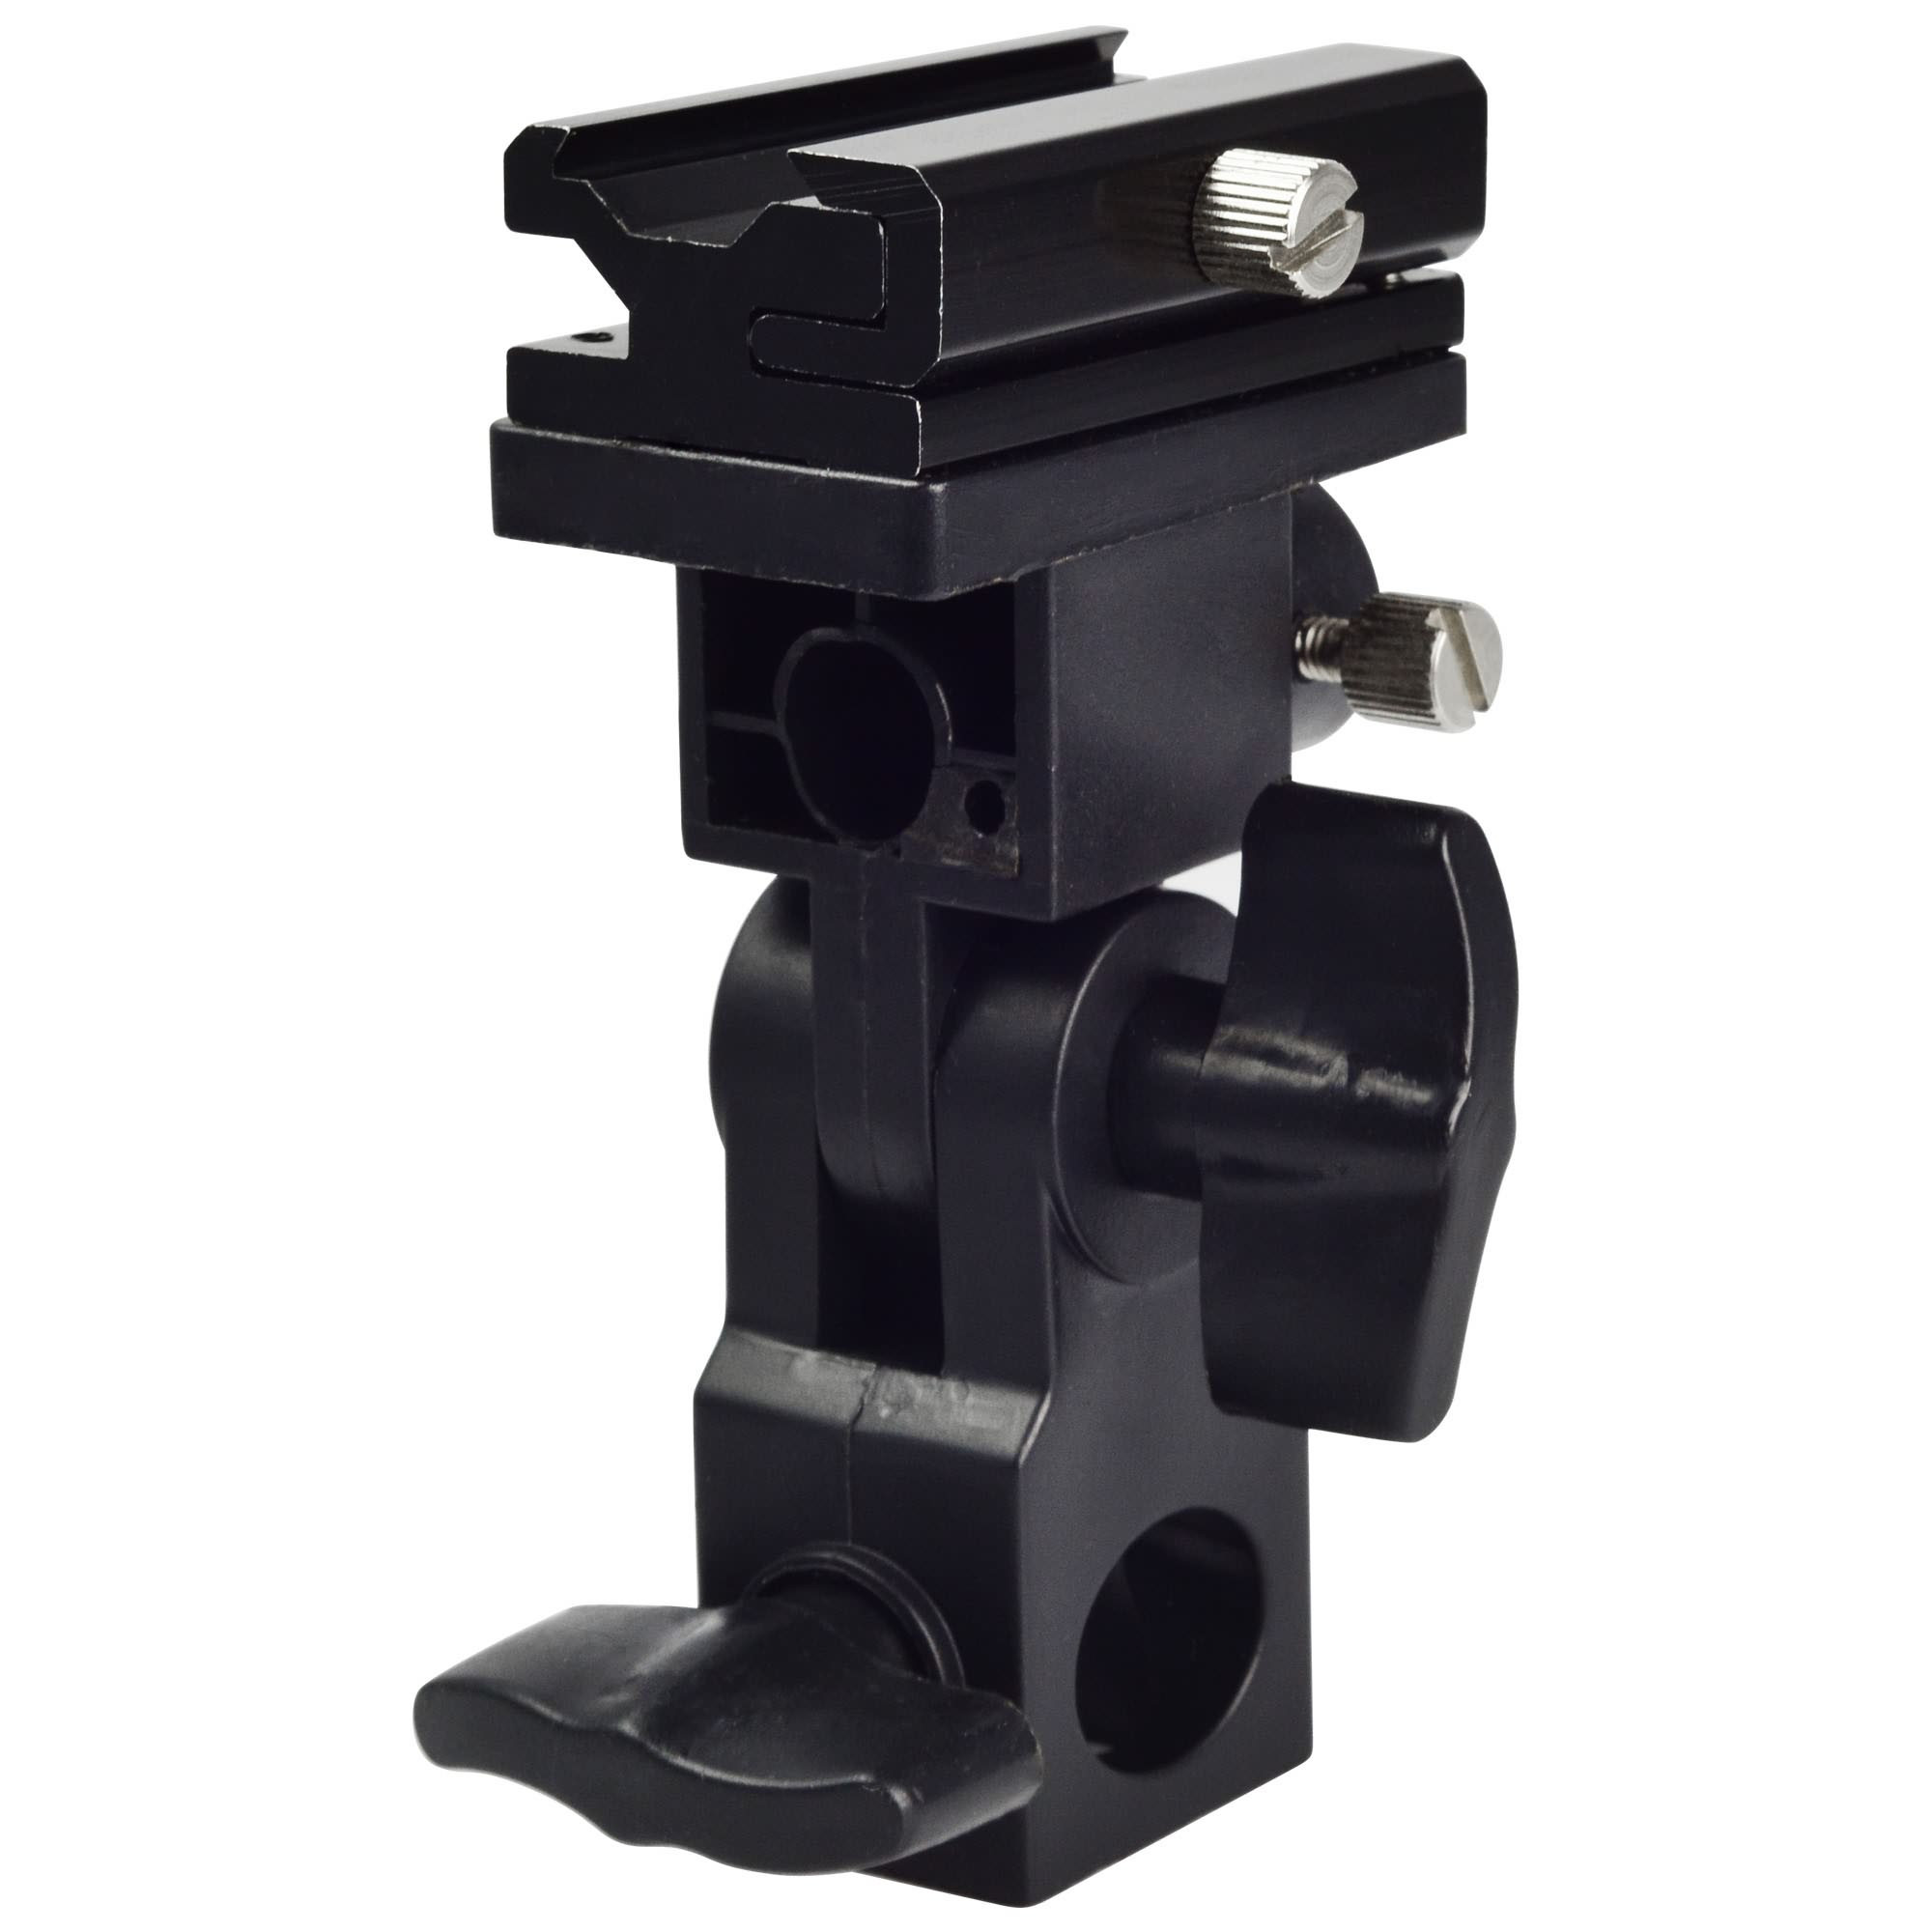 MENGS® Type B Tilting Bracket with PU material for Flashes with Universal Hot Shoe